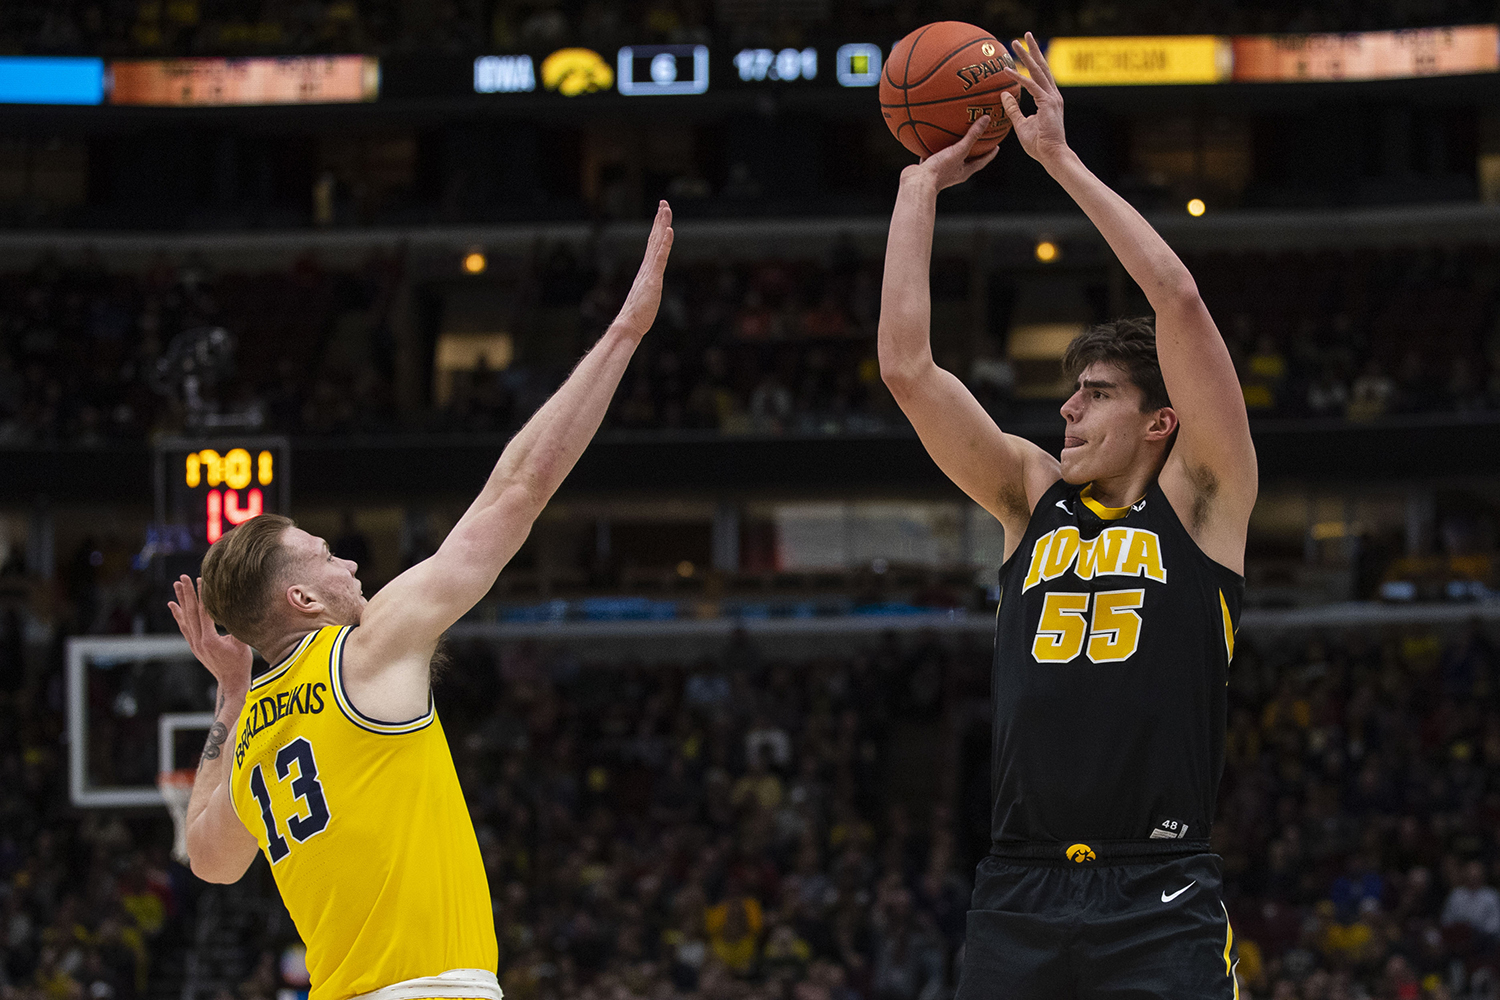 Iowa forward Luka Garza attempts a shot during the Iowa/Michigan Big Ten Tournament men's basketball game in the United Center in Chicago on Friday, March 15, 2019. The Wolverines defeated the Hawkeyes, 74-53.